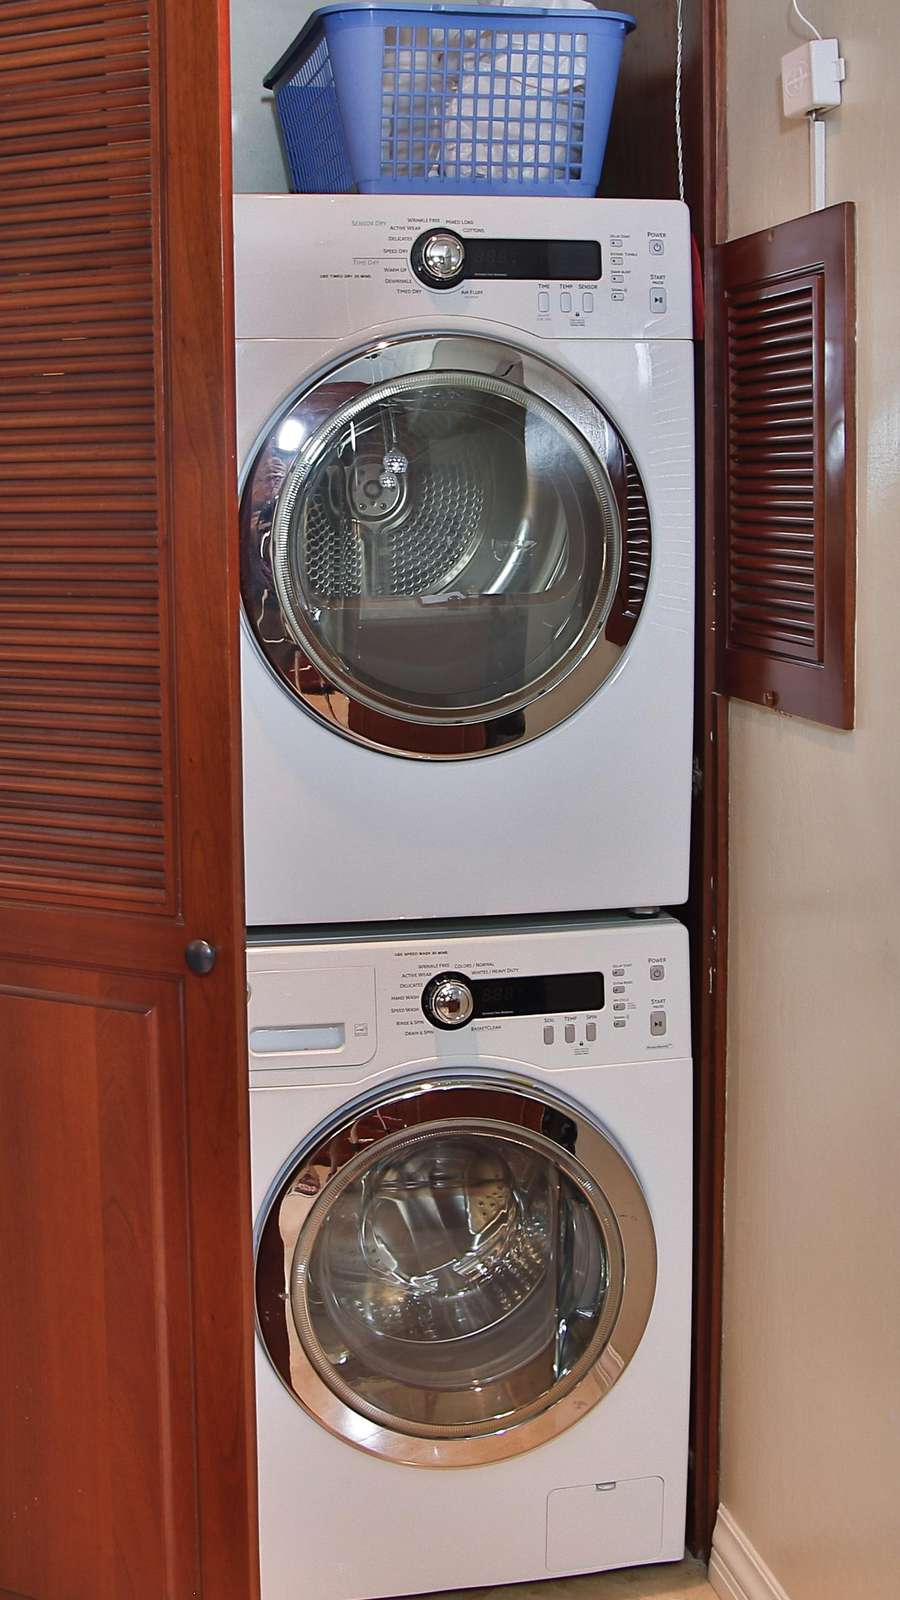 Private laundry room, front loading washer and dryer